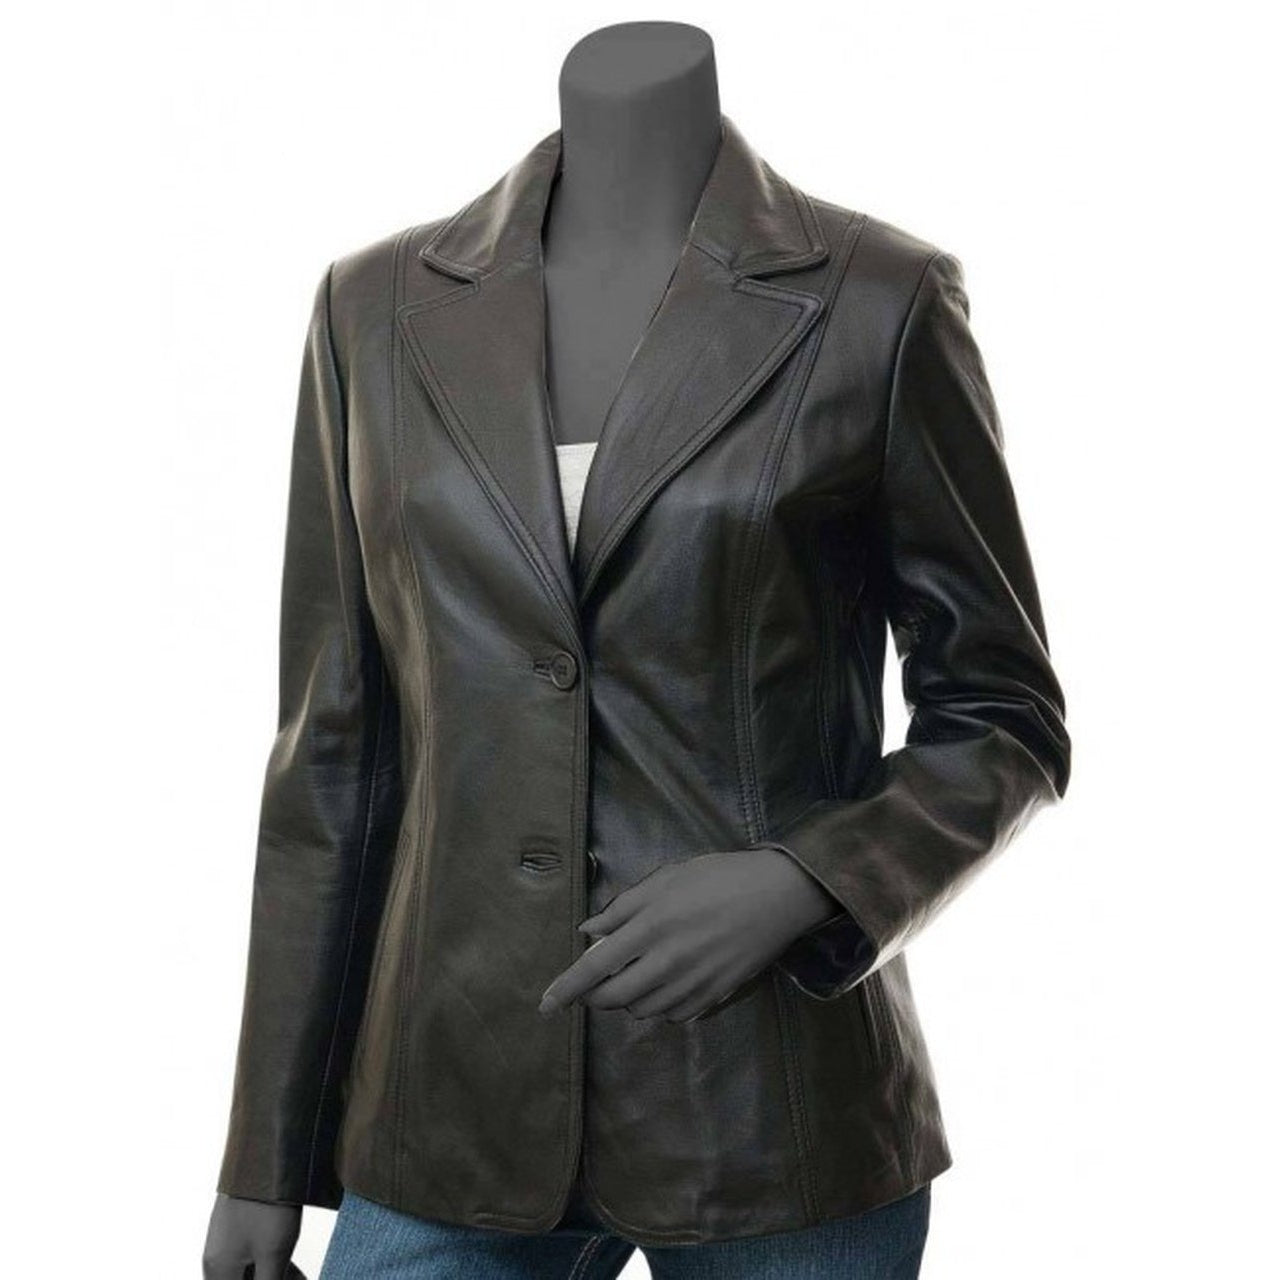 Black Leather Blazer Jacket Women - Leather Jacket